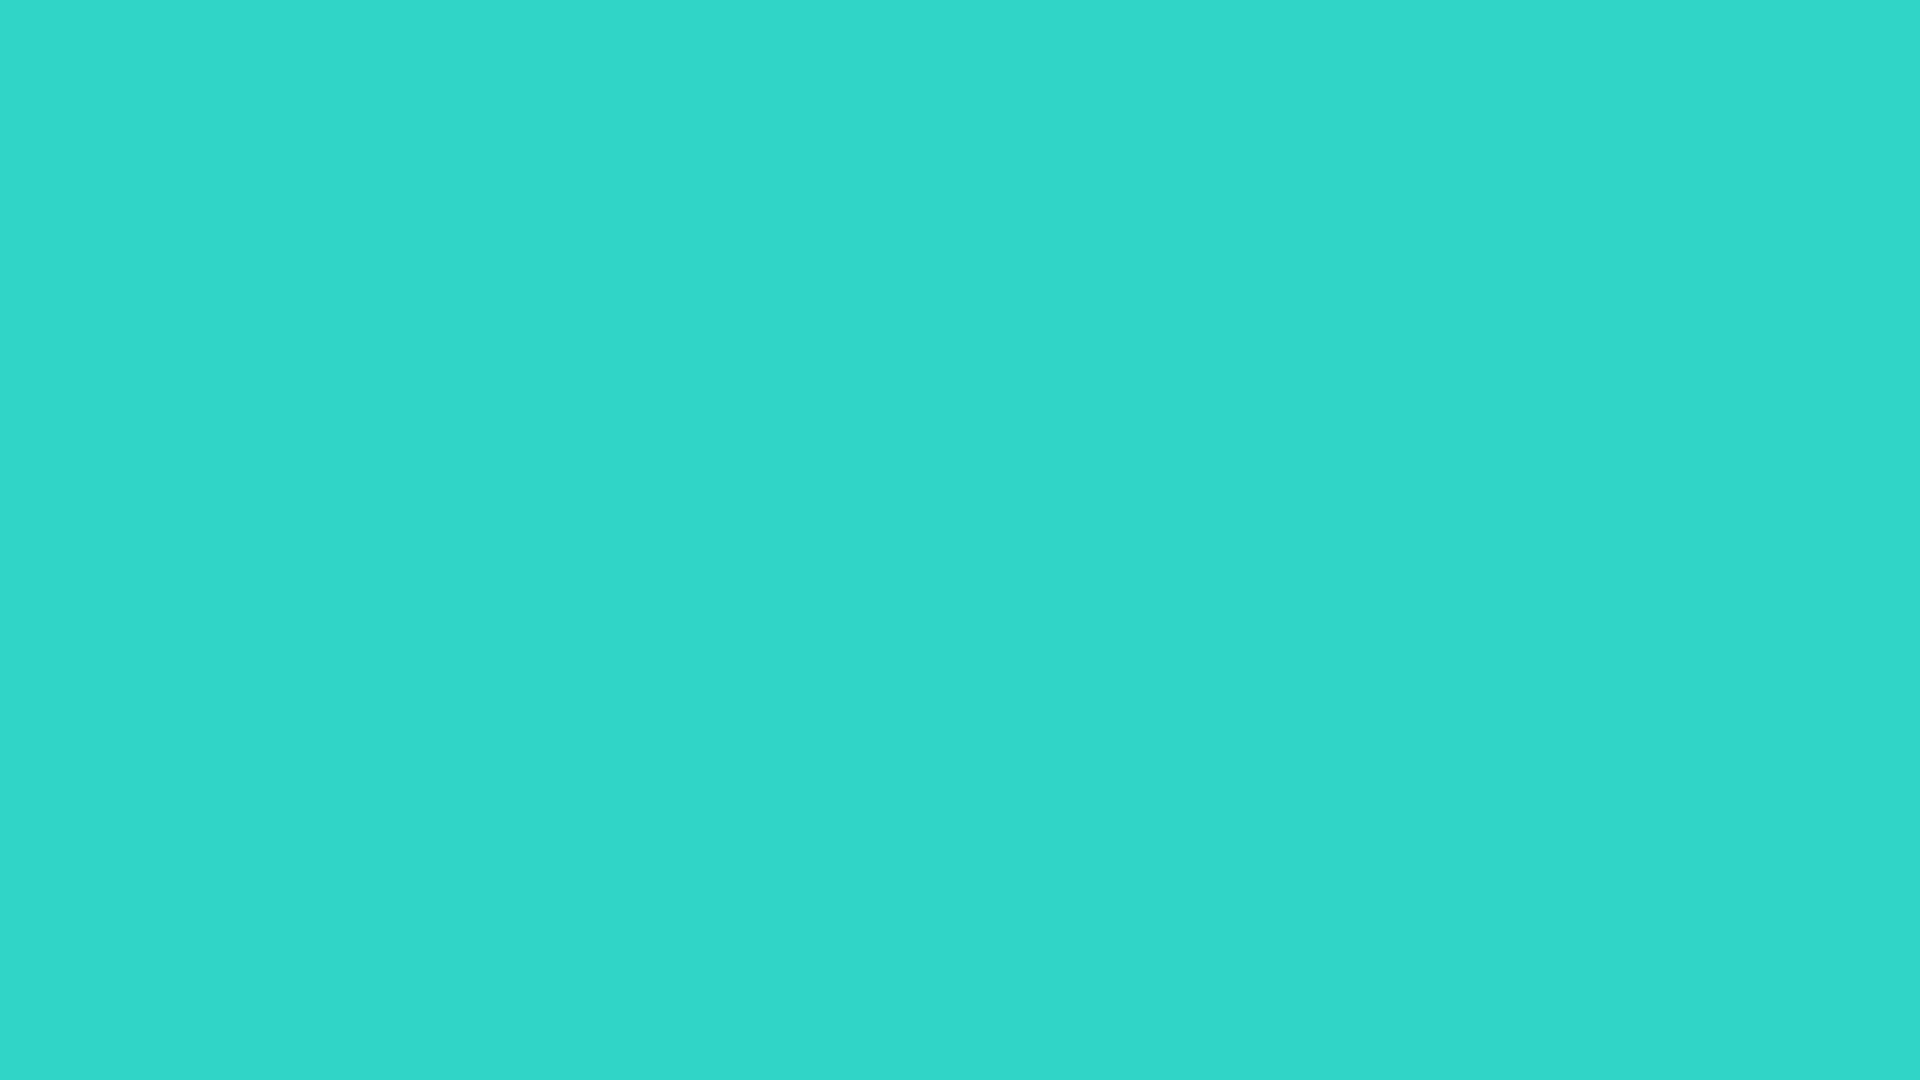 1920x1080 Turquoise Solid Color Background